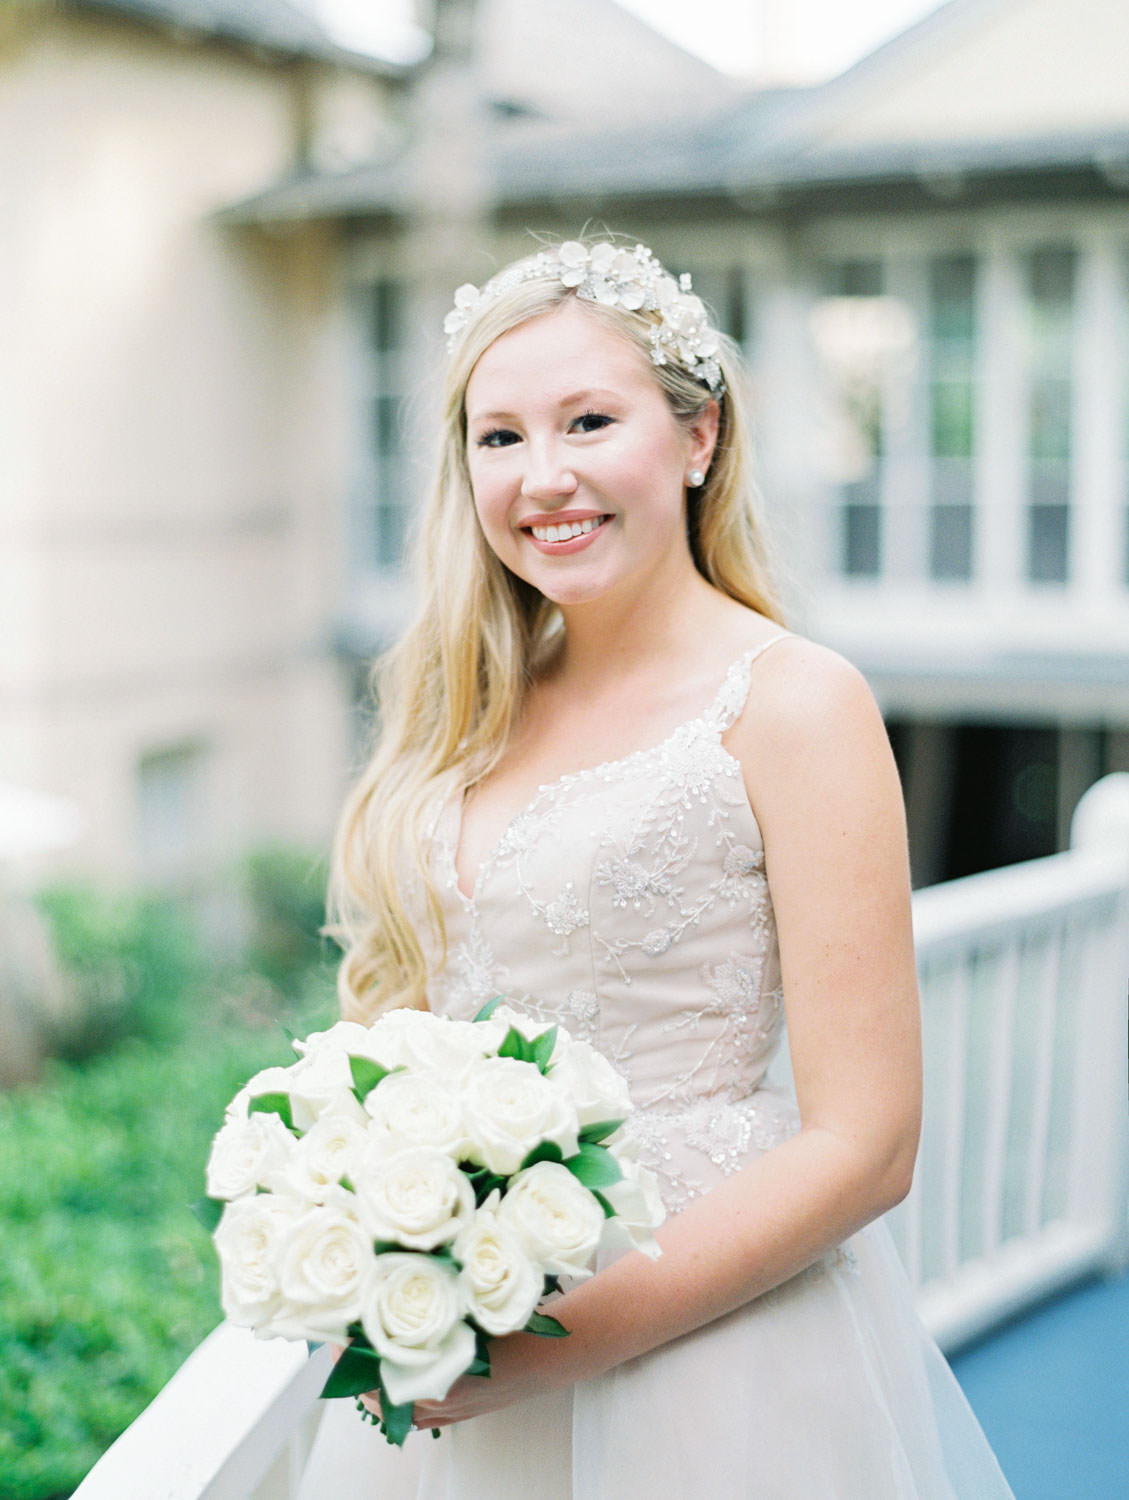 Bride in a champagne gown with a floral tiara headband and all white rose bouquet with greenery. Film photography at Jekyll Island Club Resort Wedding by Cavin Elizabeth Photography